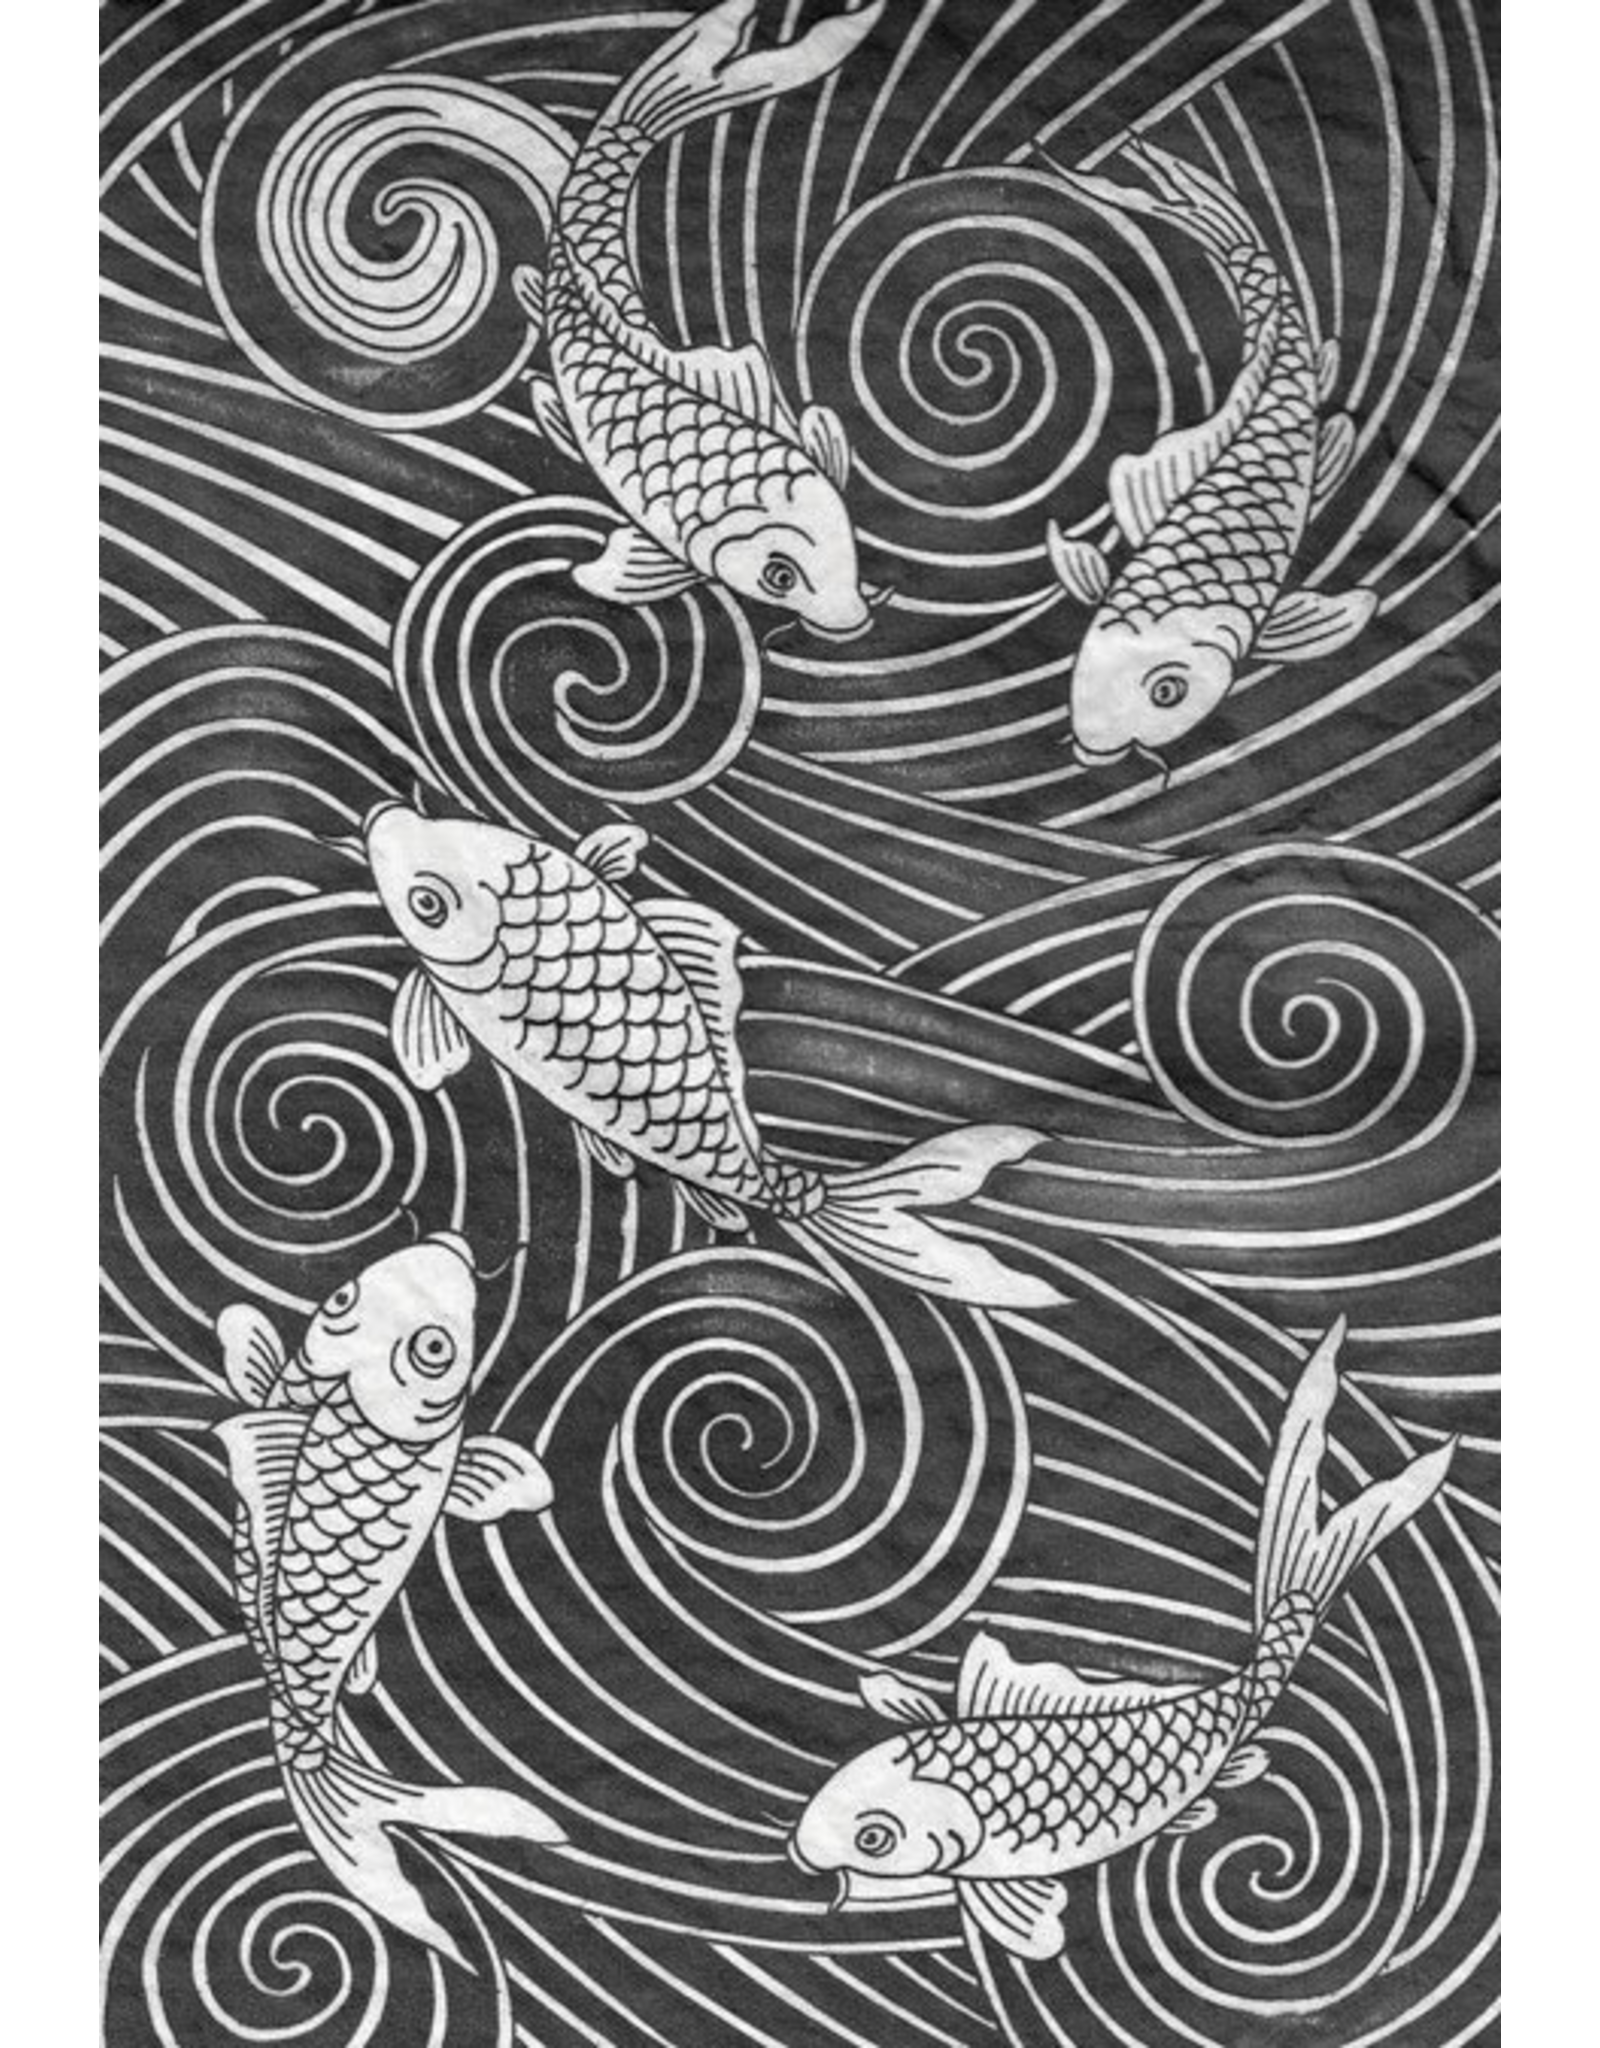 Sanbao Carp decal 2 (underglaze decal - 16cm x 22cm)